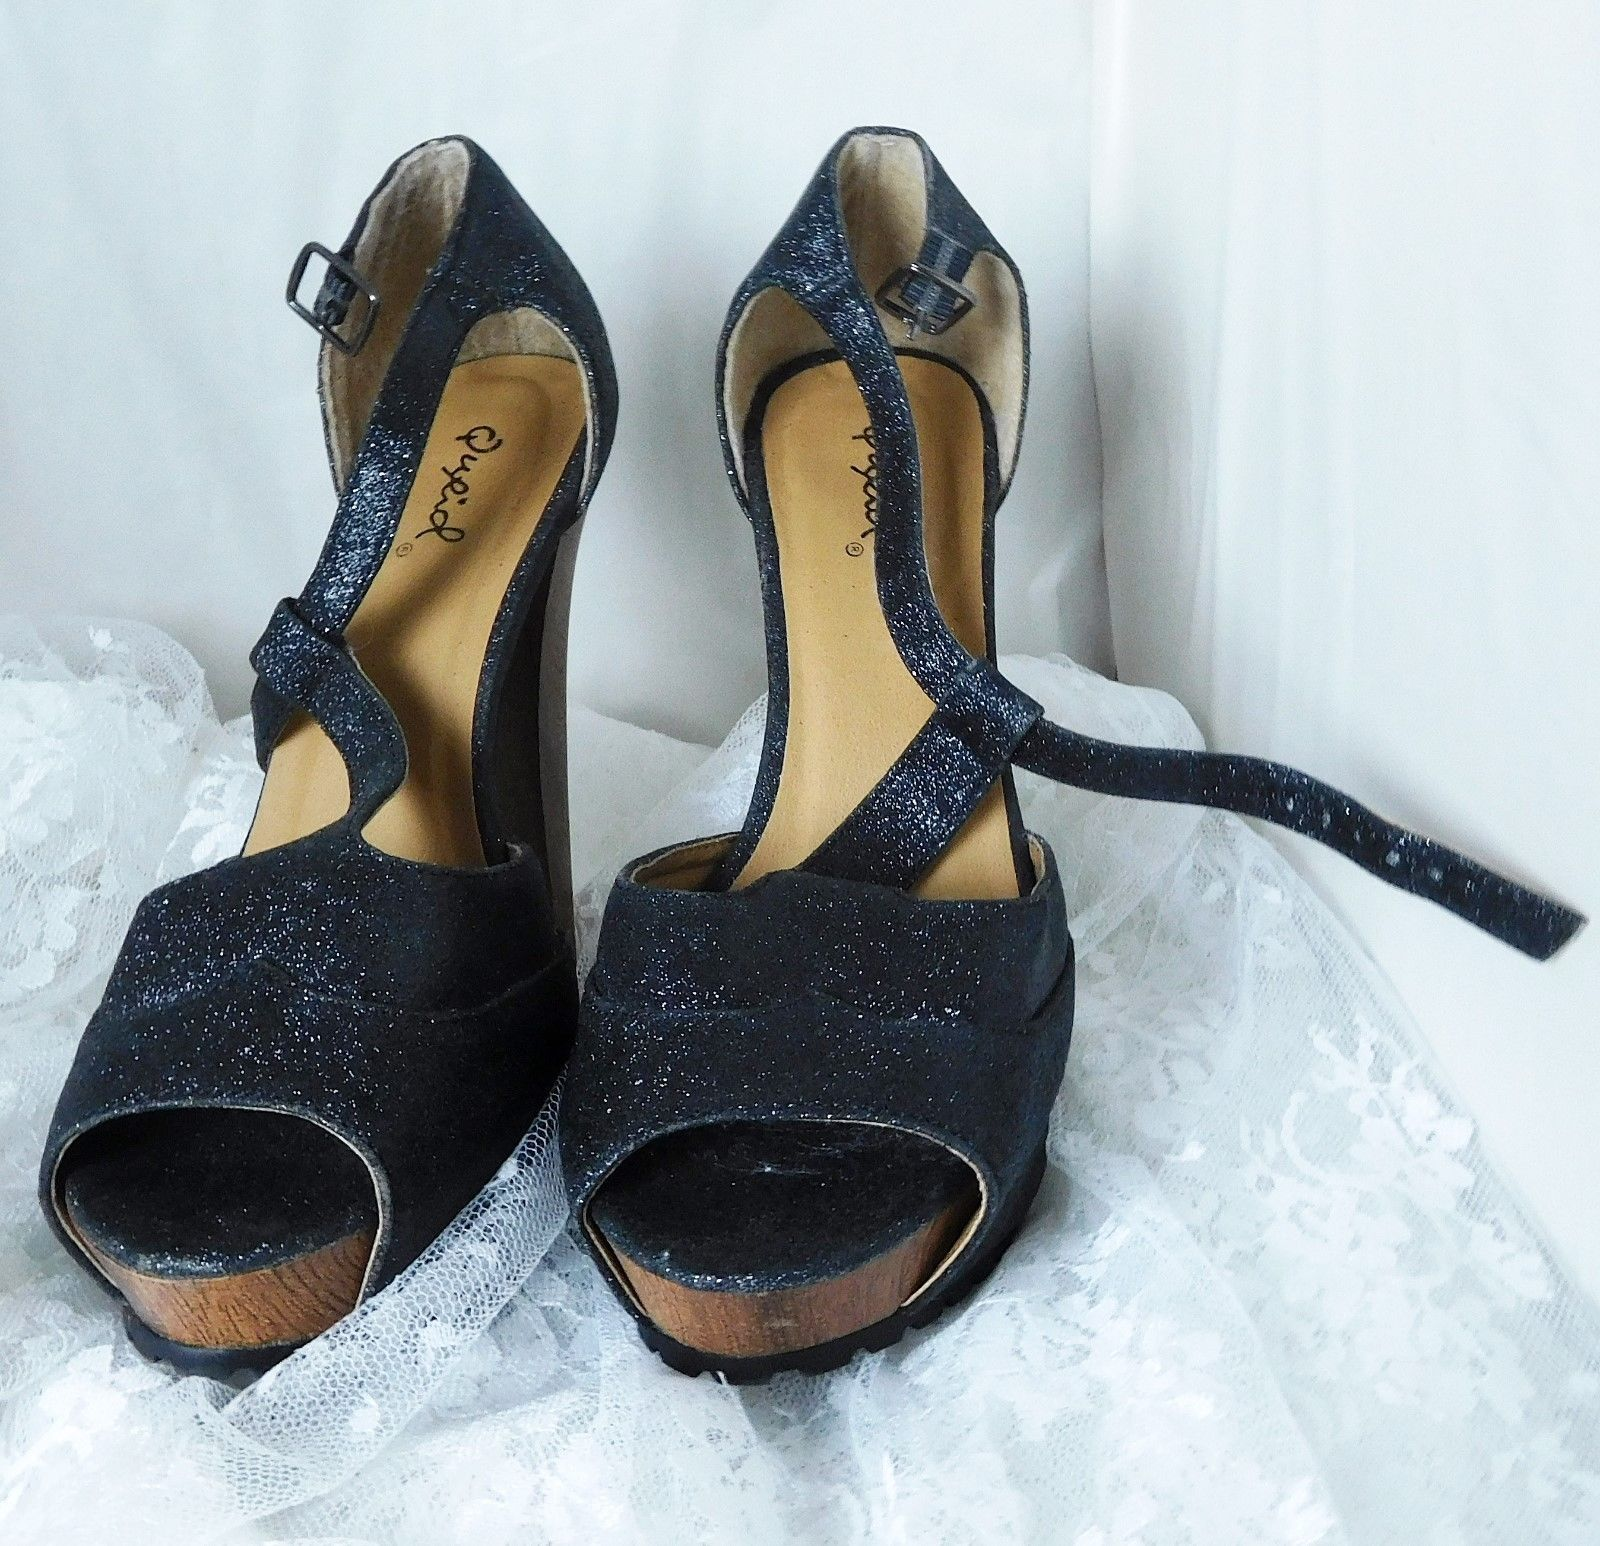 264c3b164e3 Qupid Women's High Heeled Shoes - Size 7 - and 49 similar items